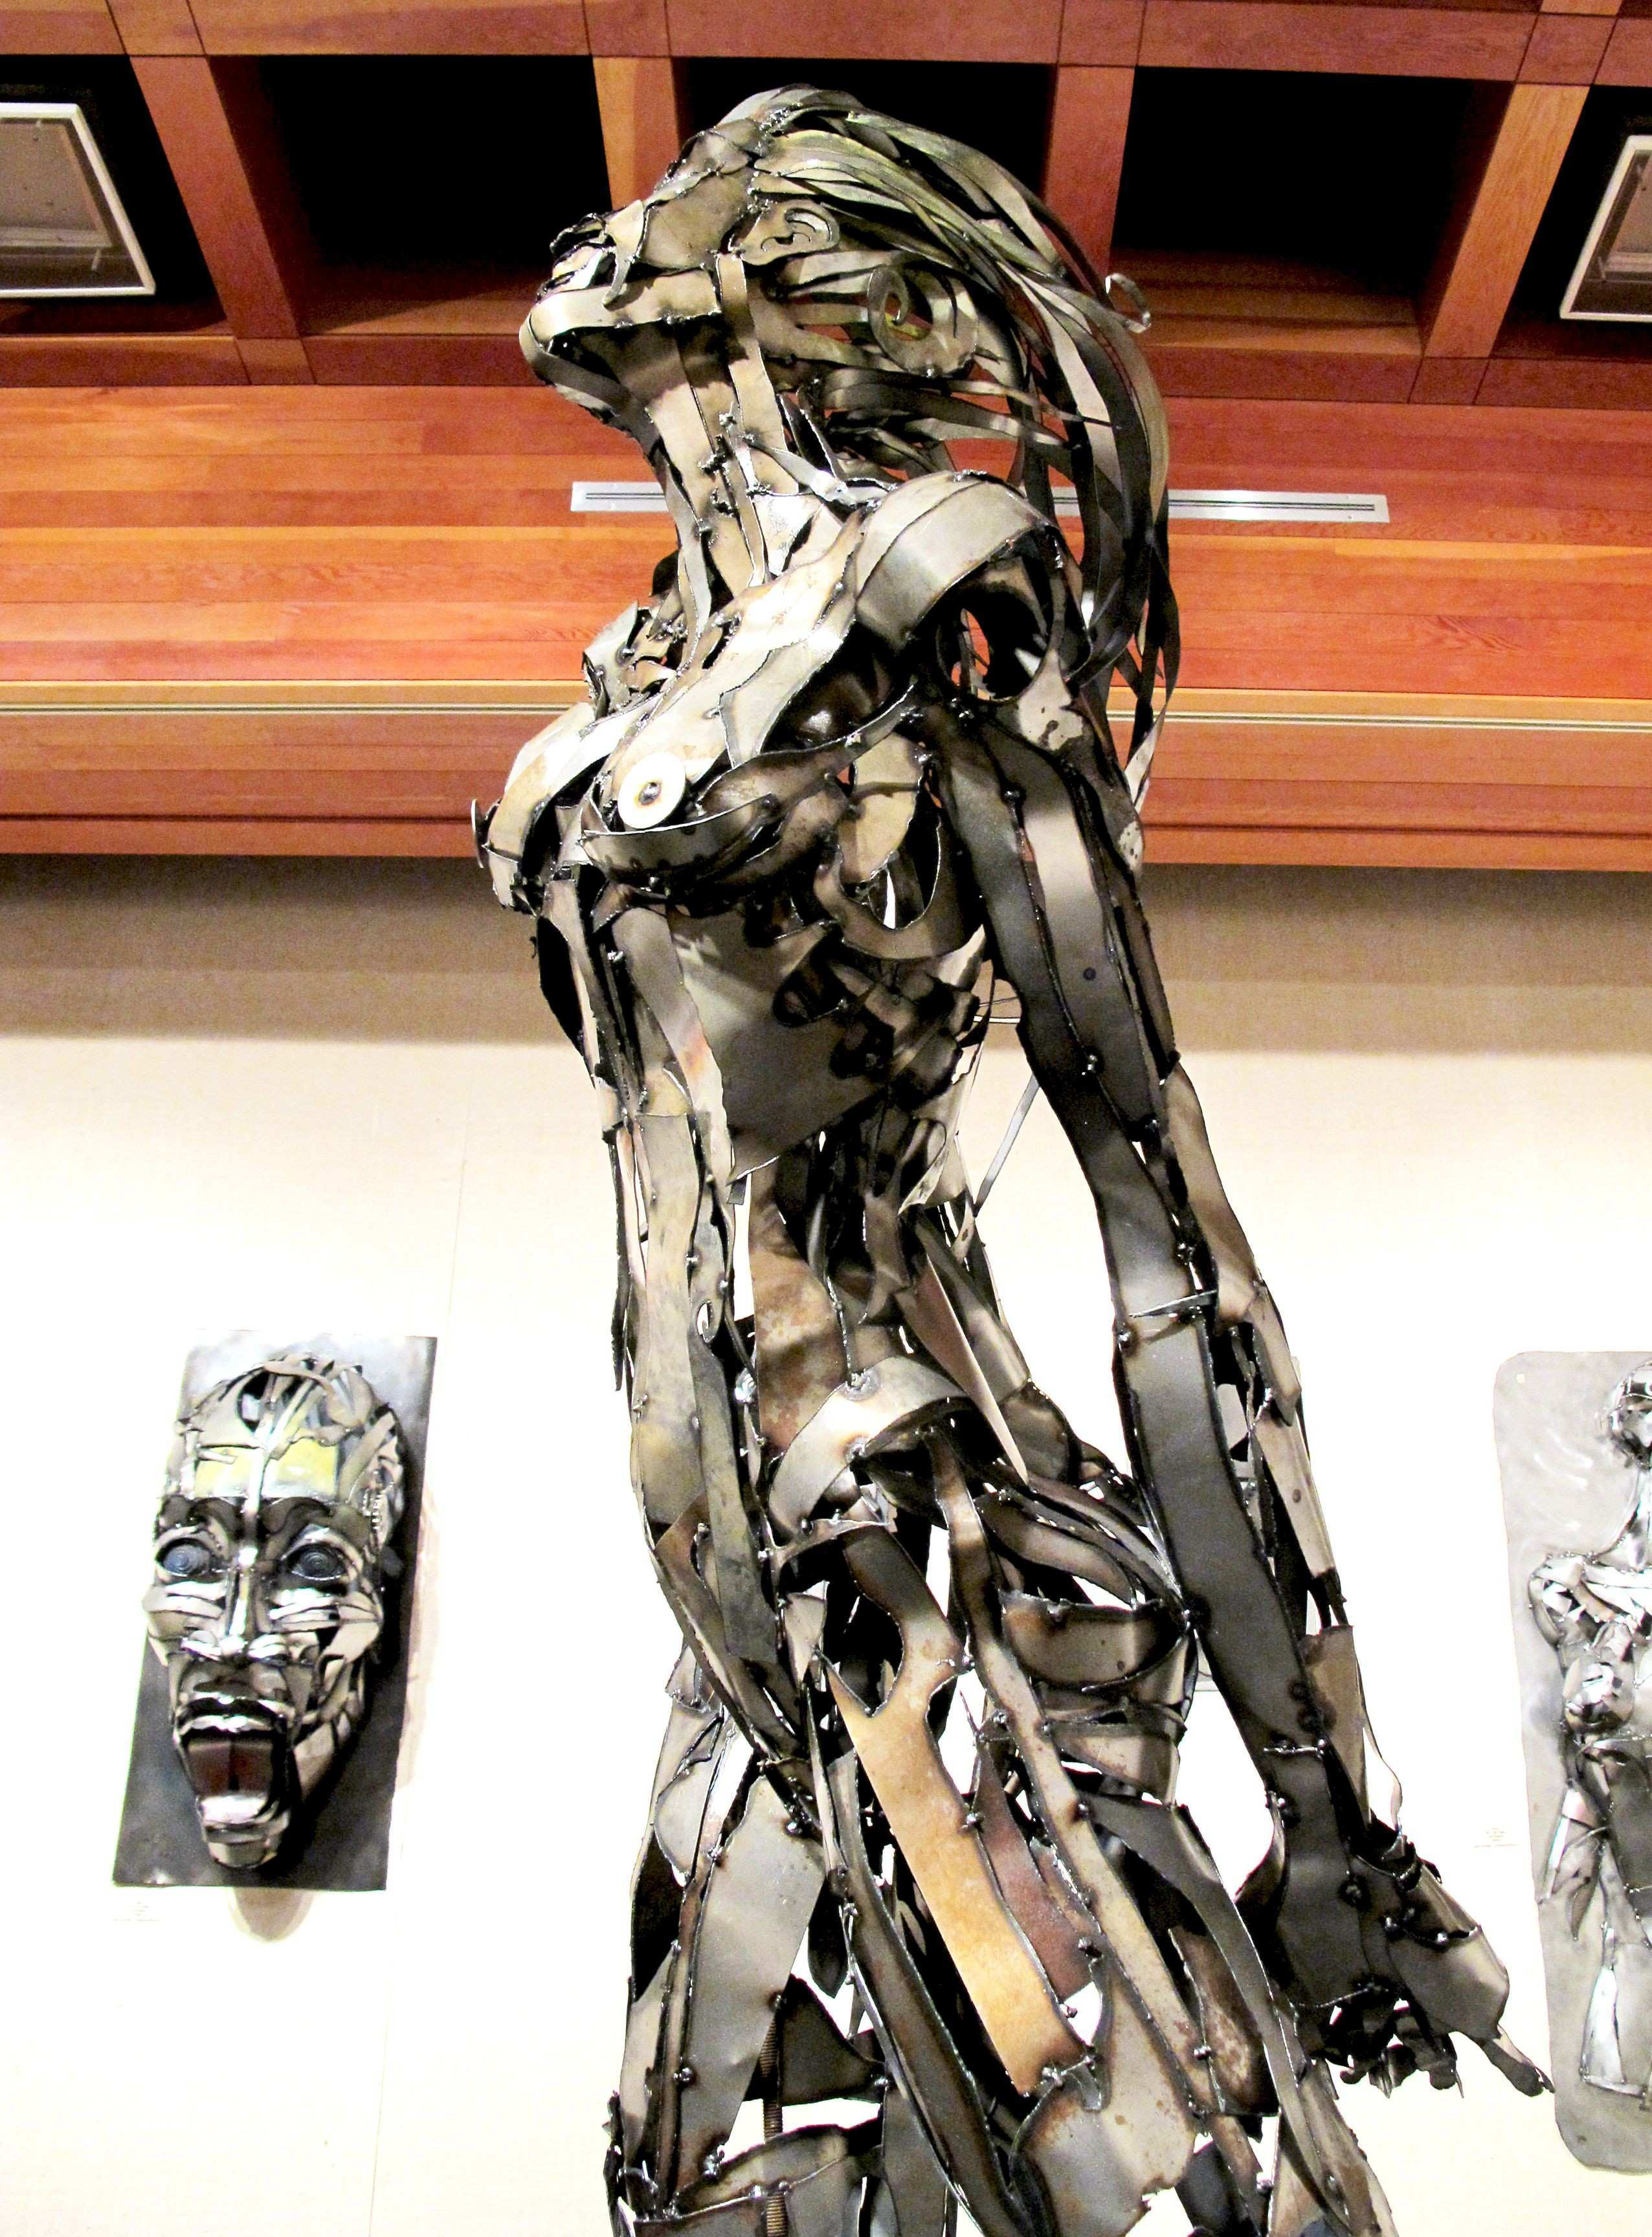 Woman Metal Art Sculpture created by Joel Sullivan of Iron Designs